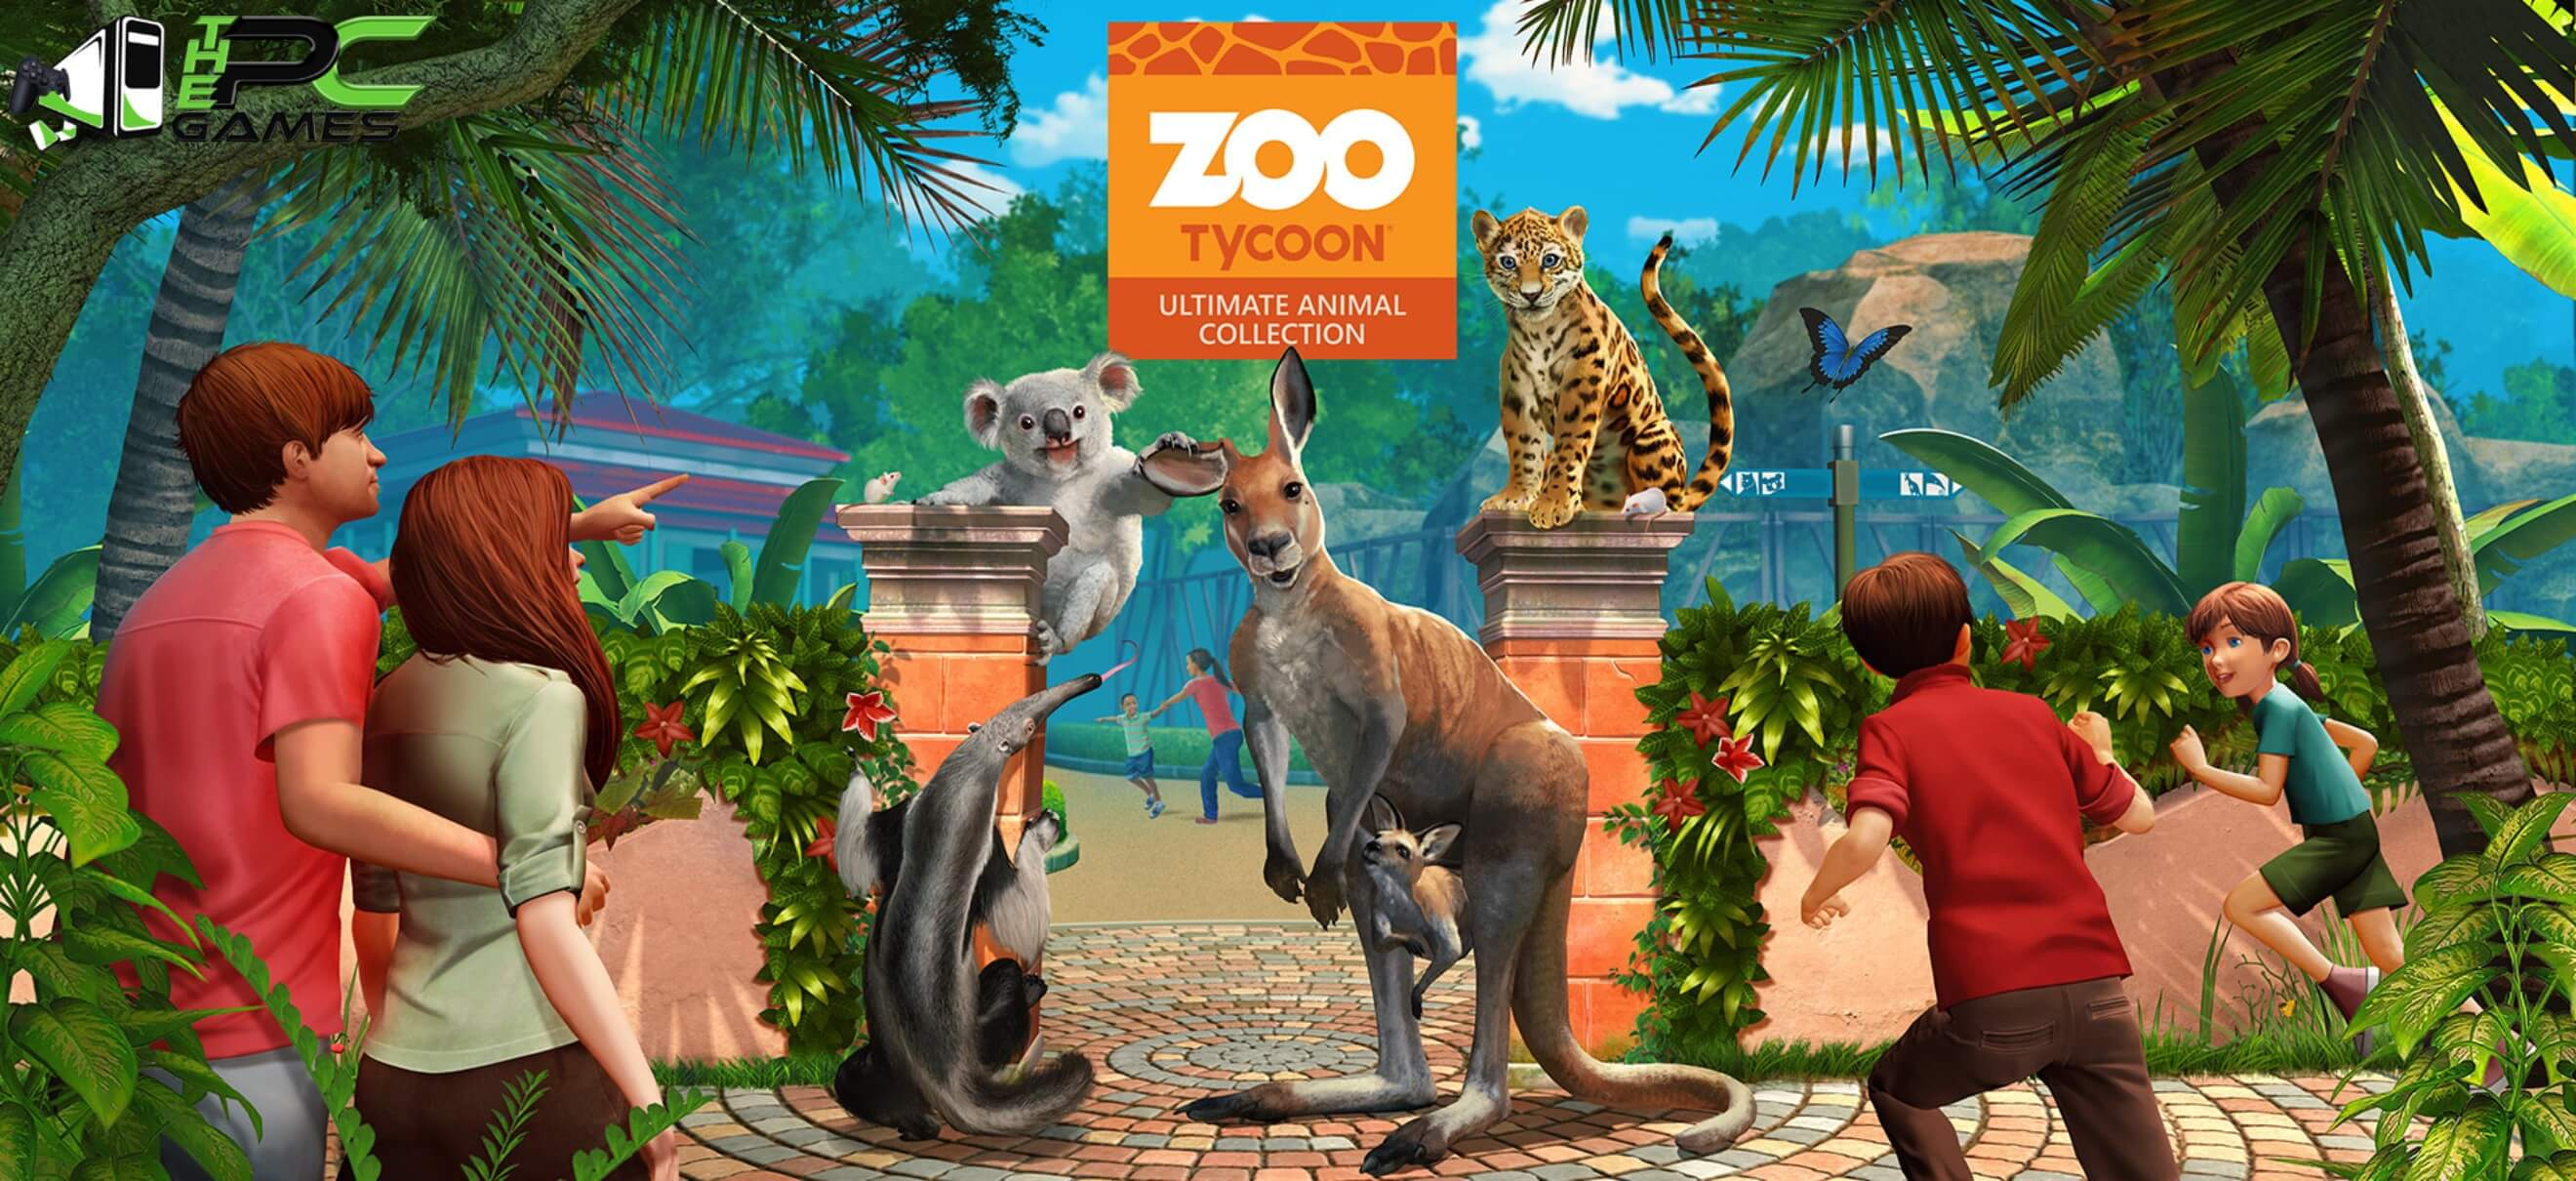 Zoo-Tycoon-2-Ultimate-Animals-Collection-PC-Game-Crack-Highly-Compressed-Free-Download.jpg